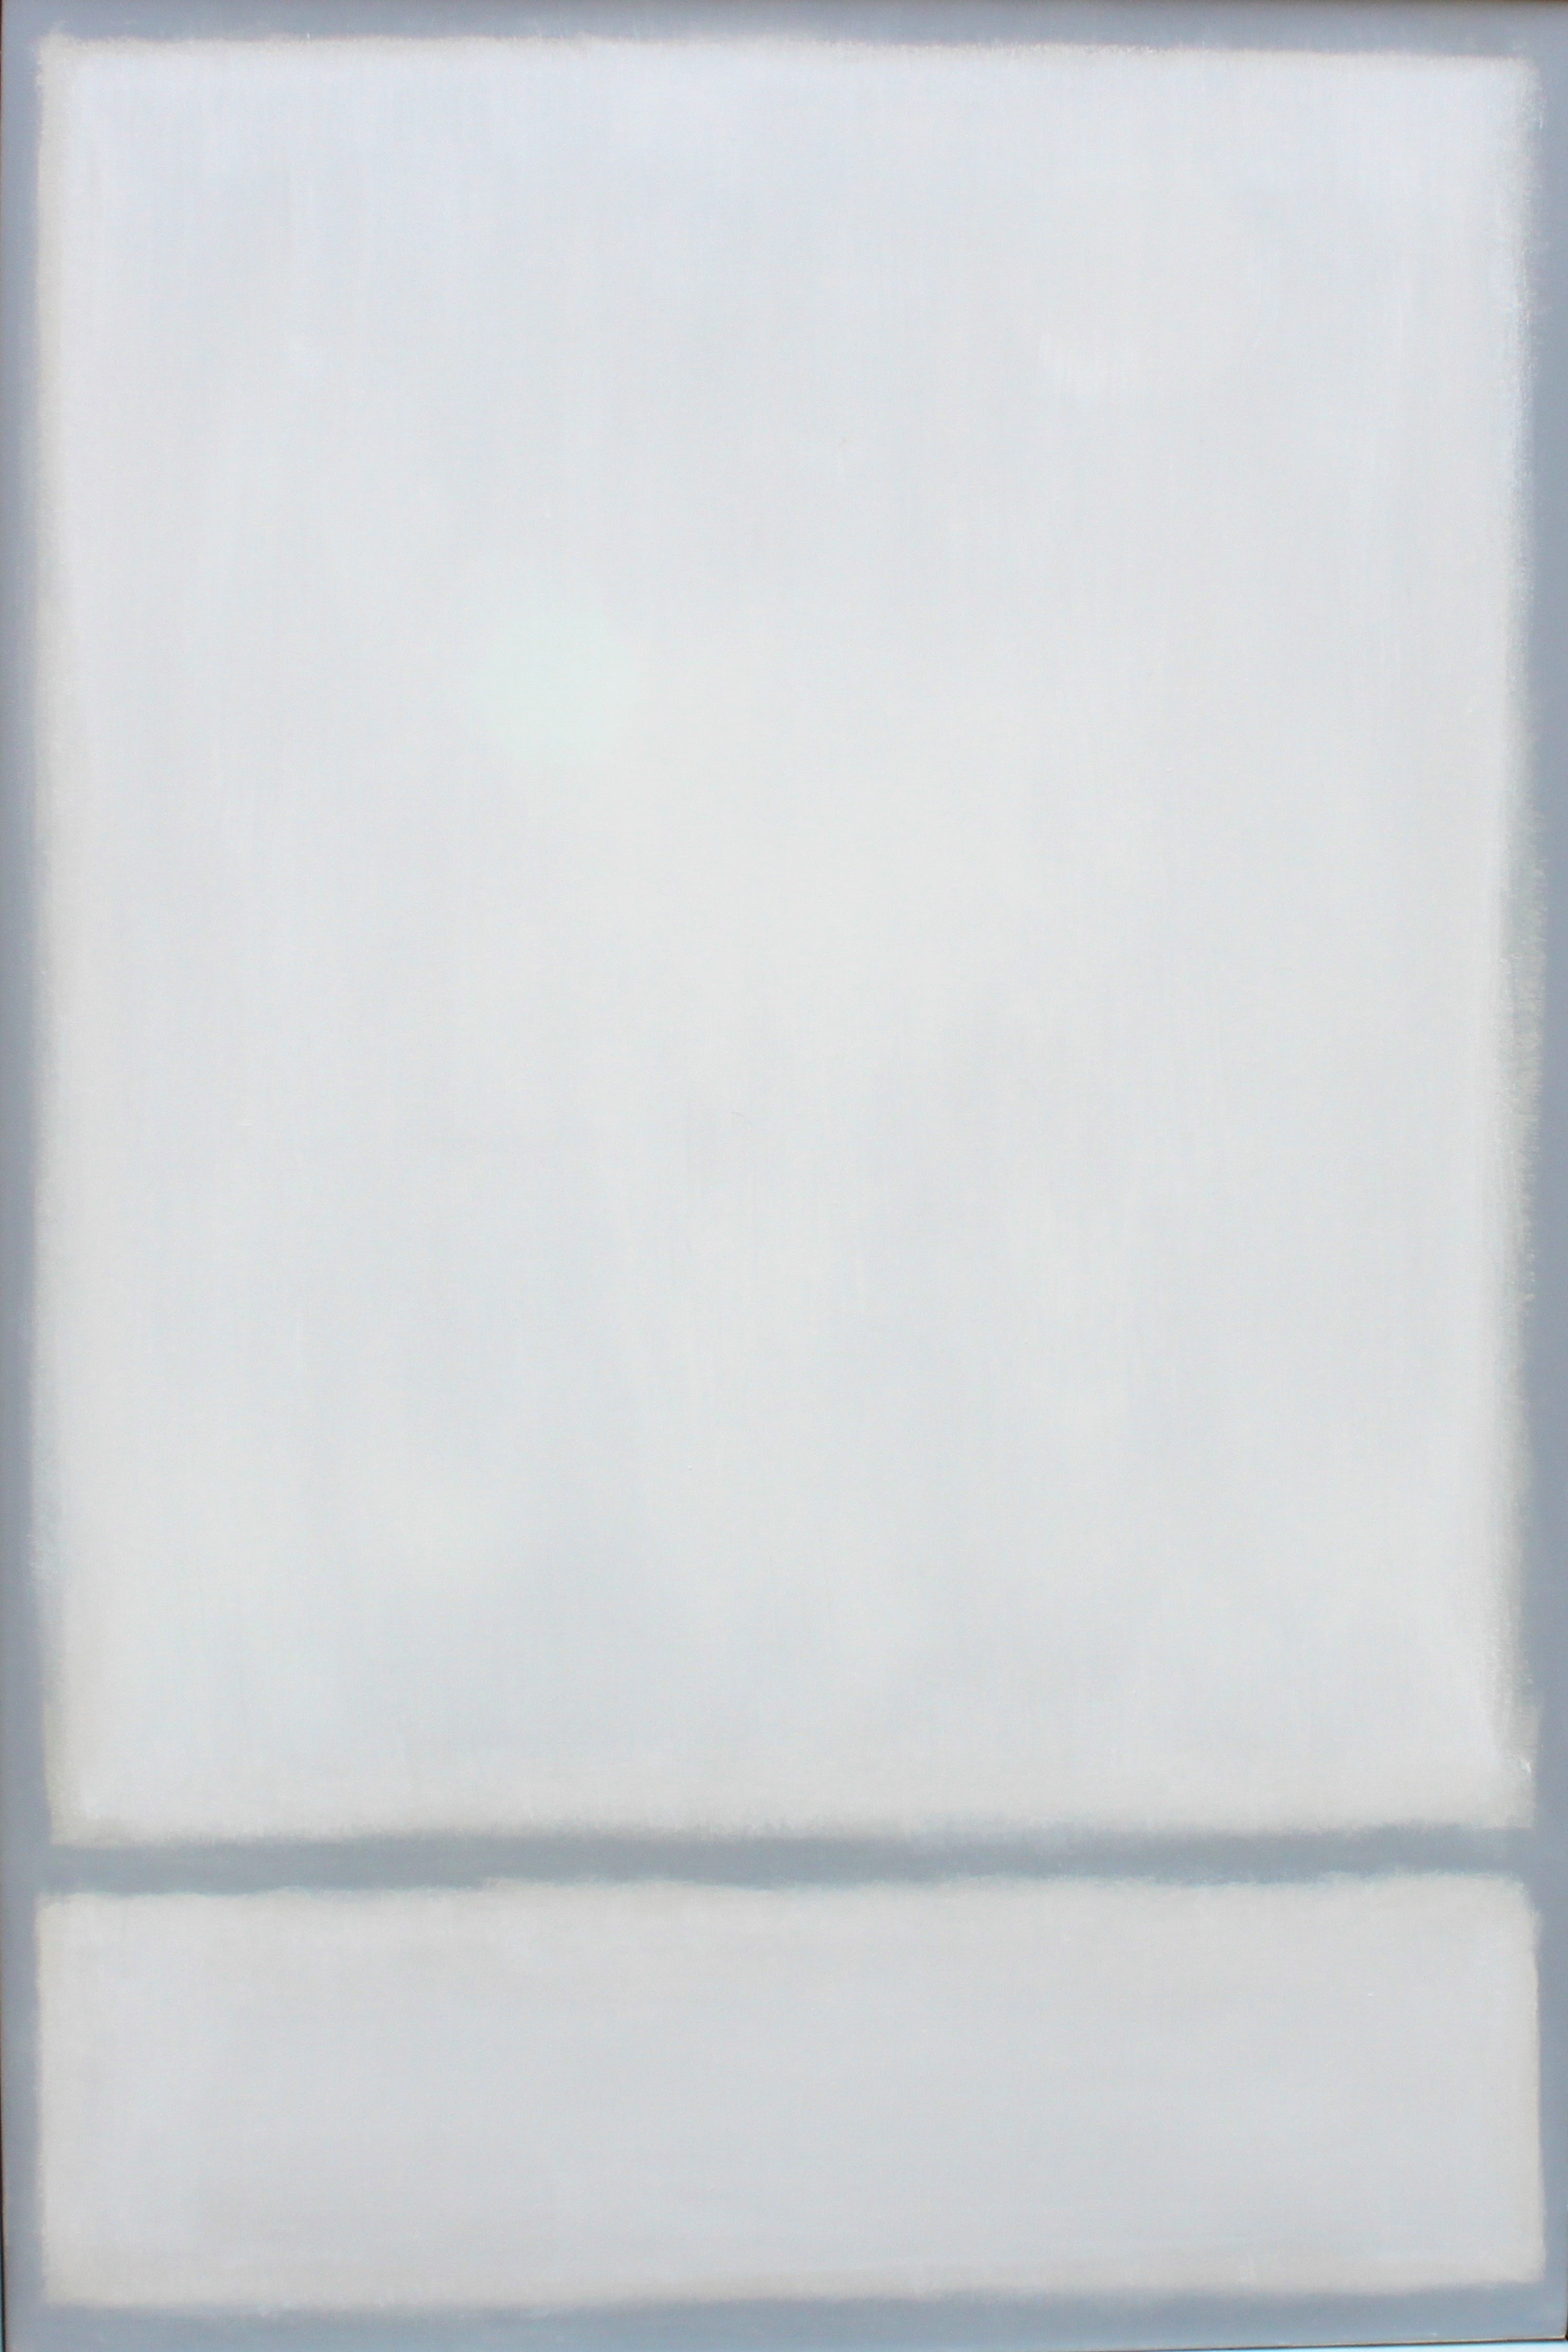 Fadeout, 2016, oil on linen, 36 x 54 in, $12,500